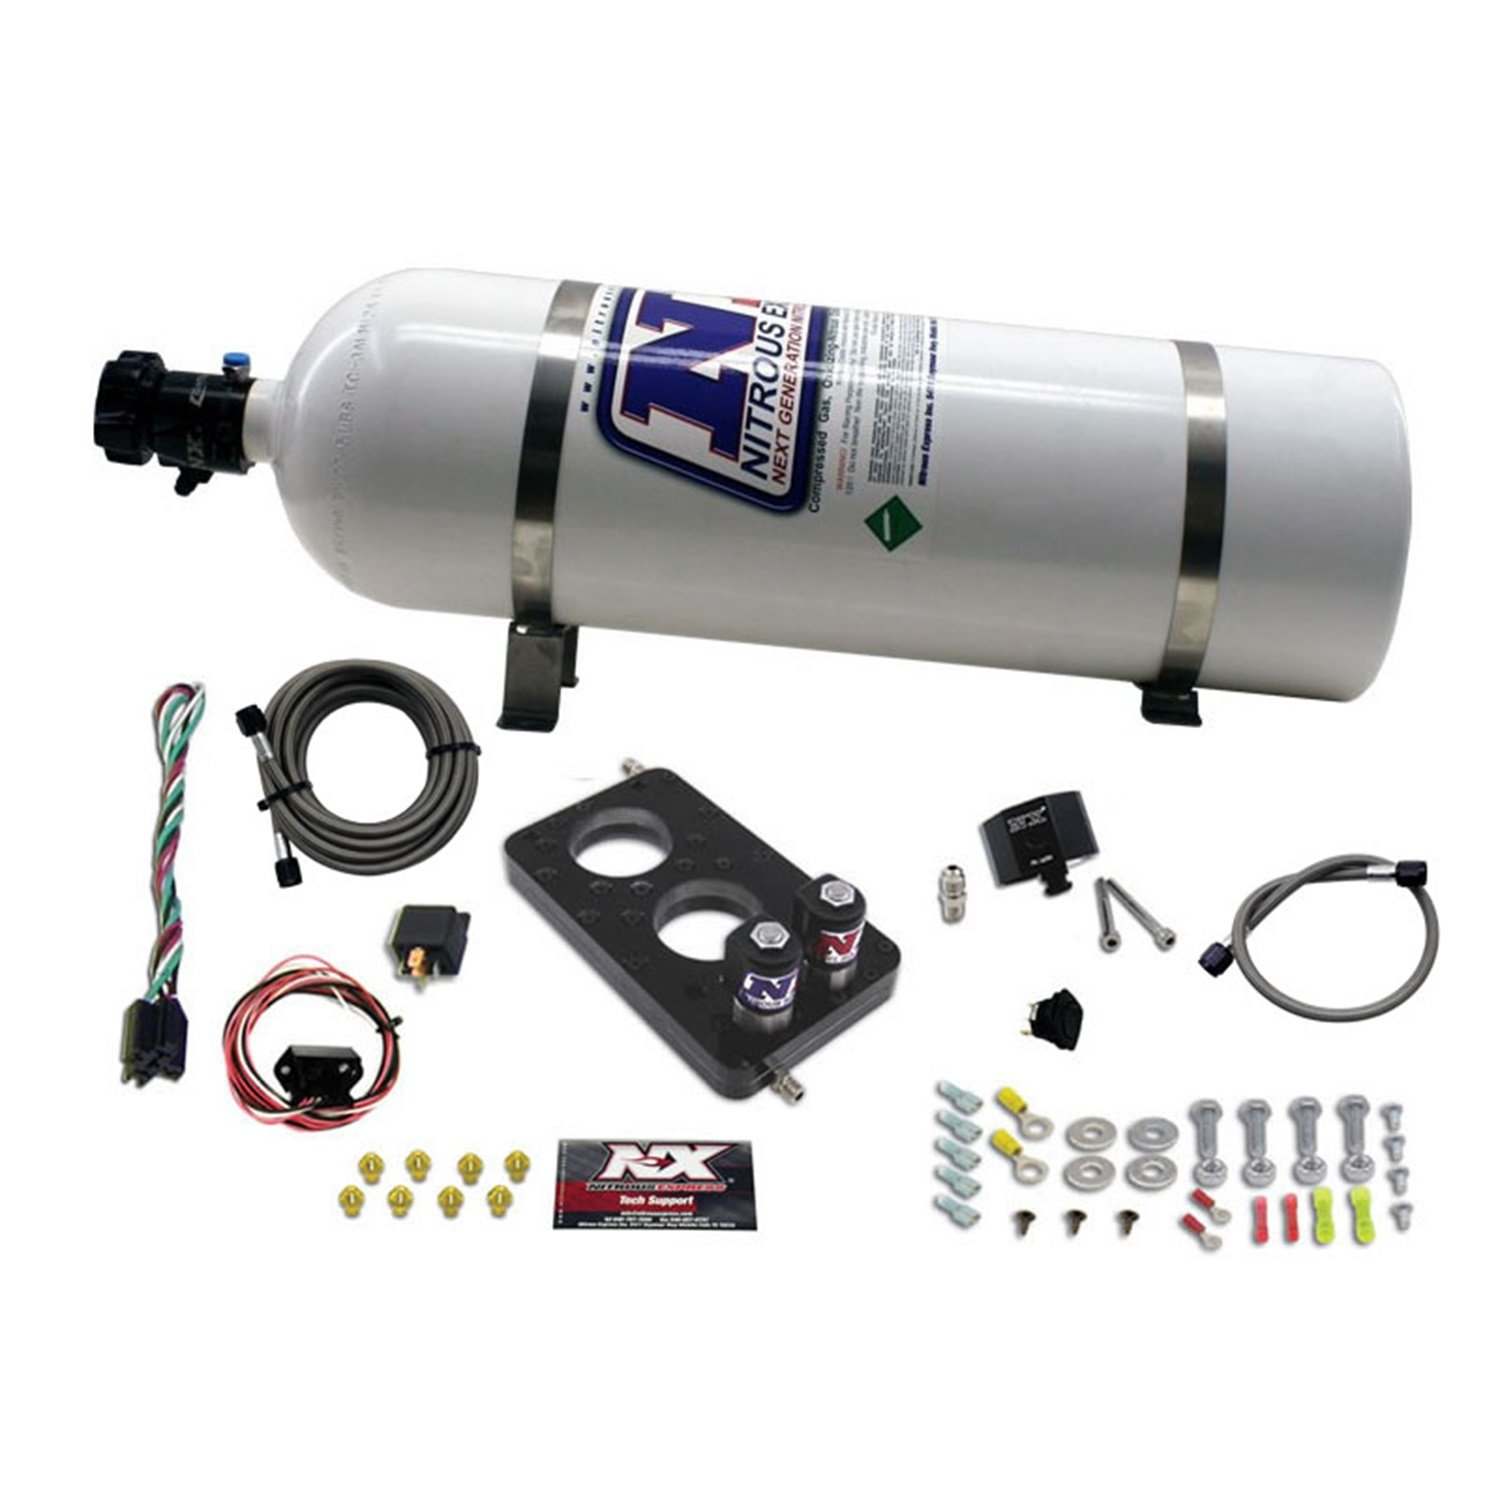 Nitrous Express 20947-15 50-150 HP 3-Valve Plate System with 15 lbs. Bottle for Ford 4.6L Engine